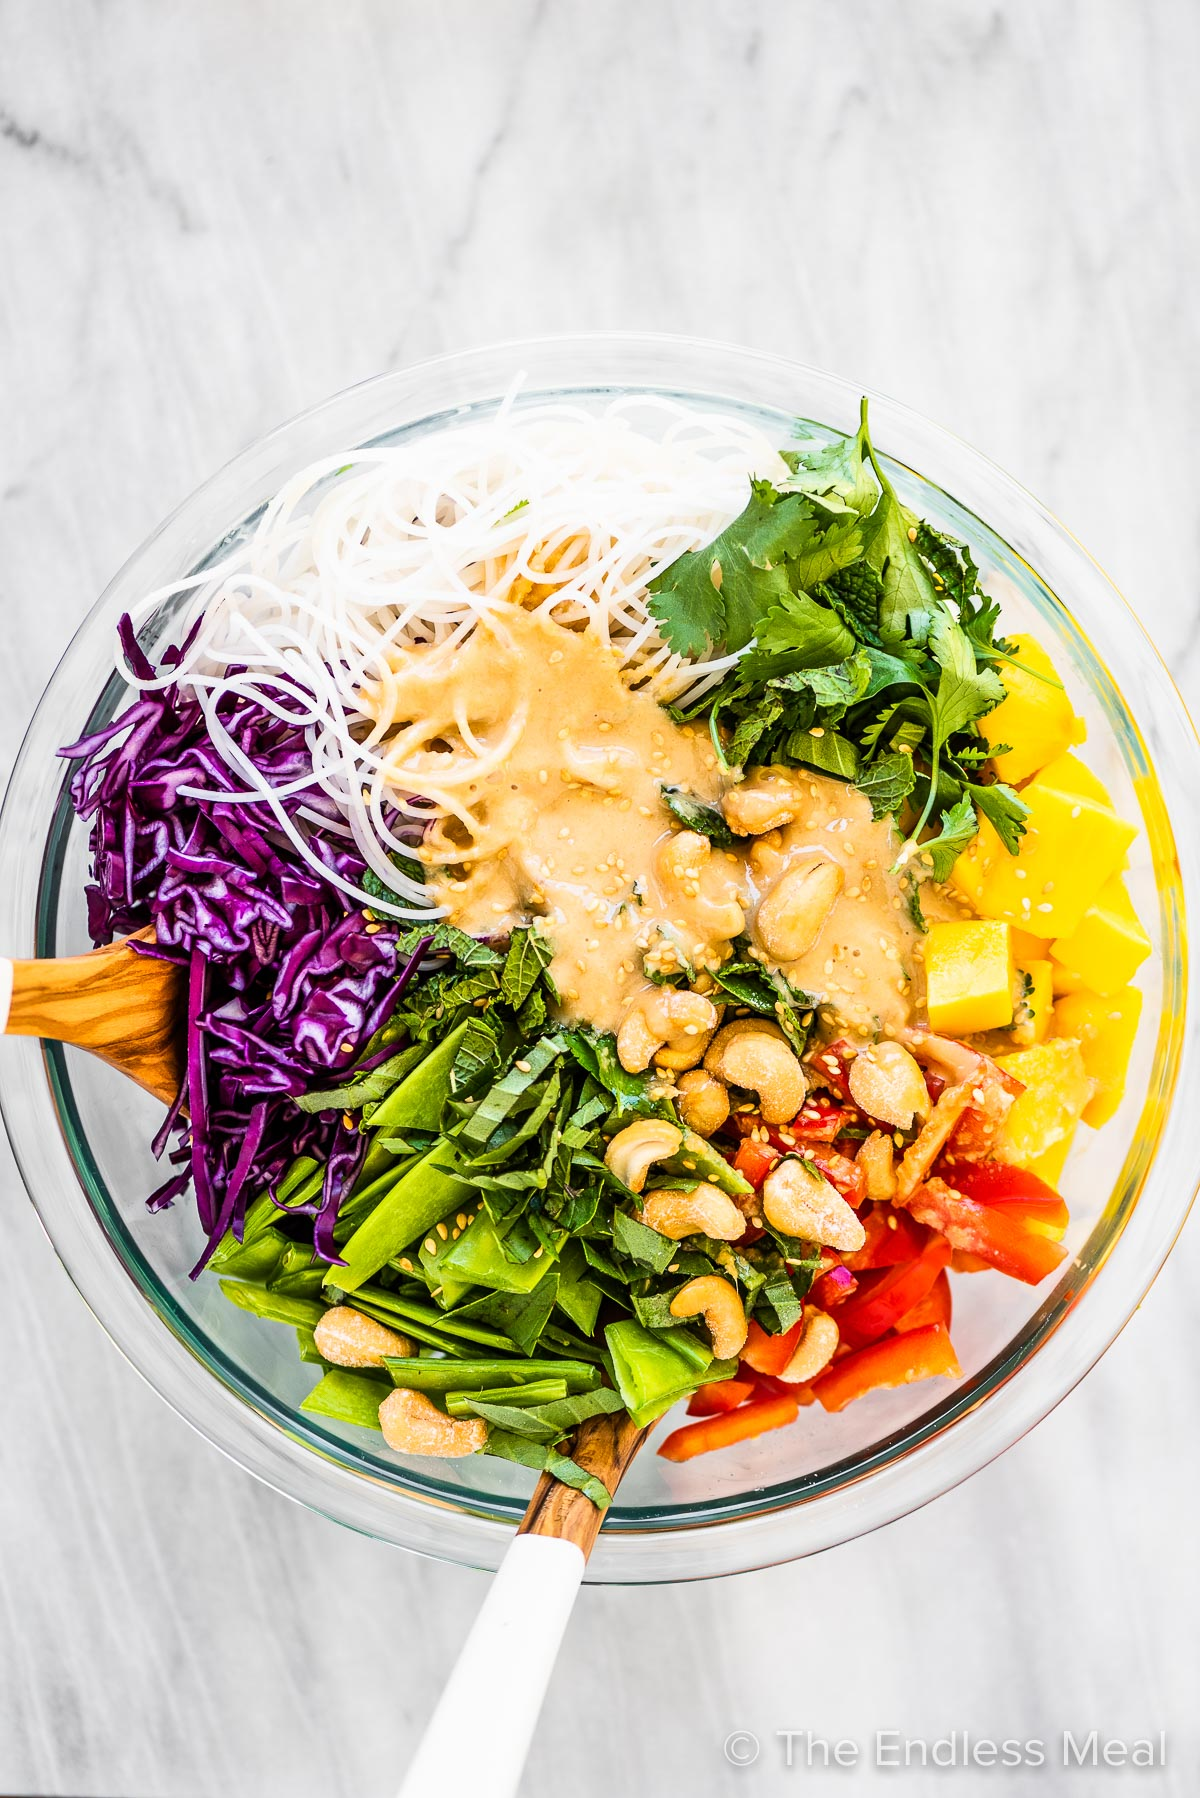 All the ingredients for this Thai noodle salad in a glass bowl with wooden serving spoons.